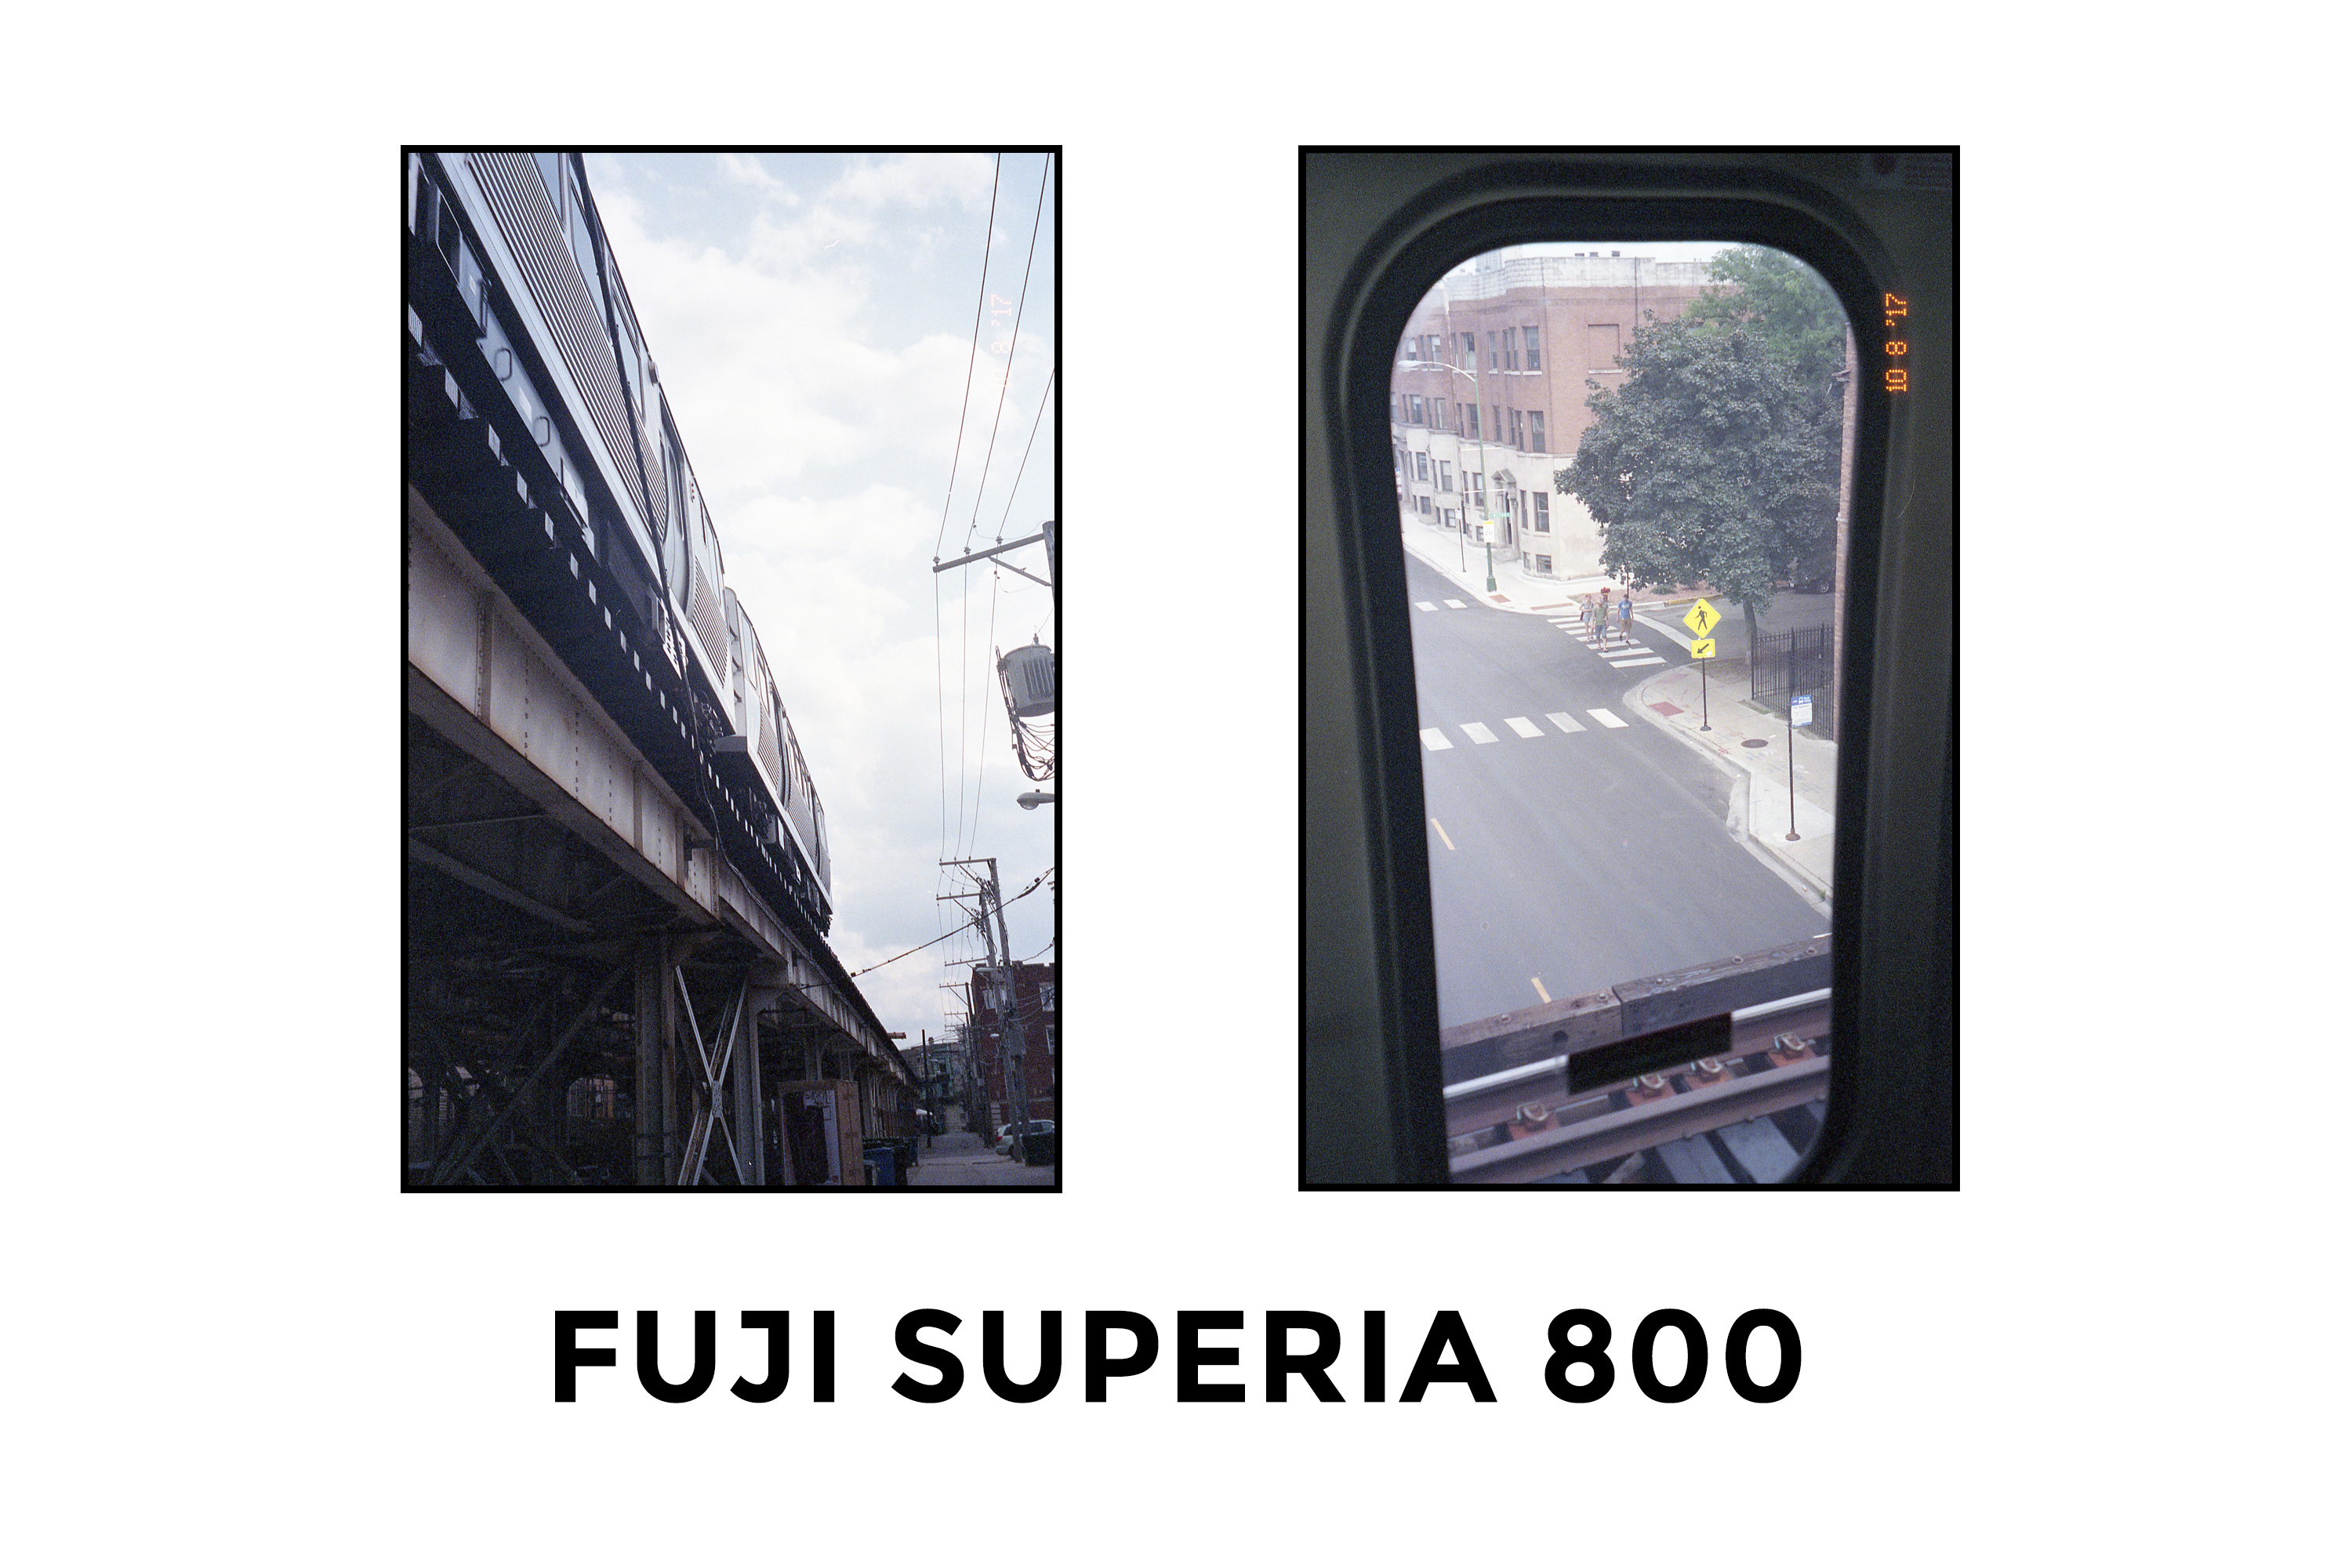 Fuji Superai 800 4 - Fuji Superia 800 vs. Kodak Portra 800 Film Stock Review - FilterGrade Blog